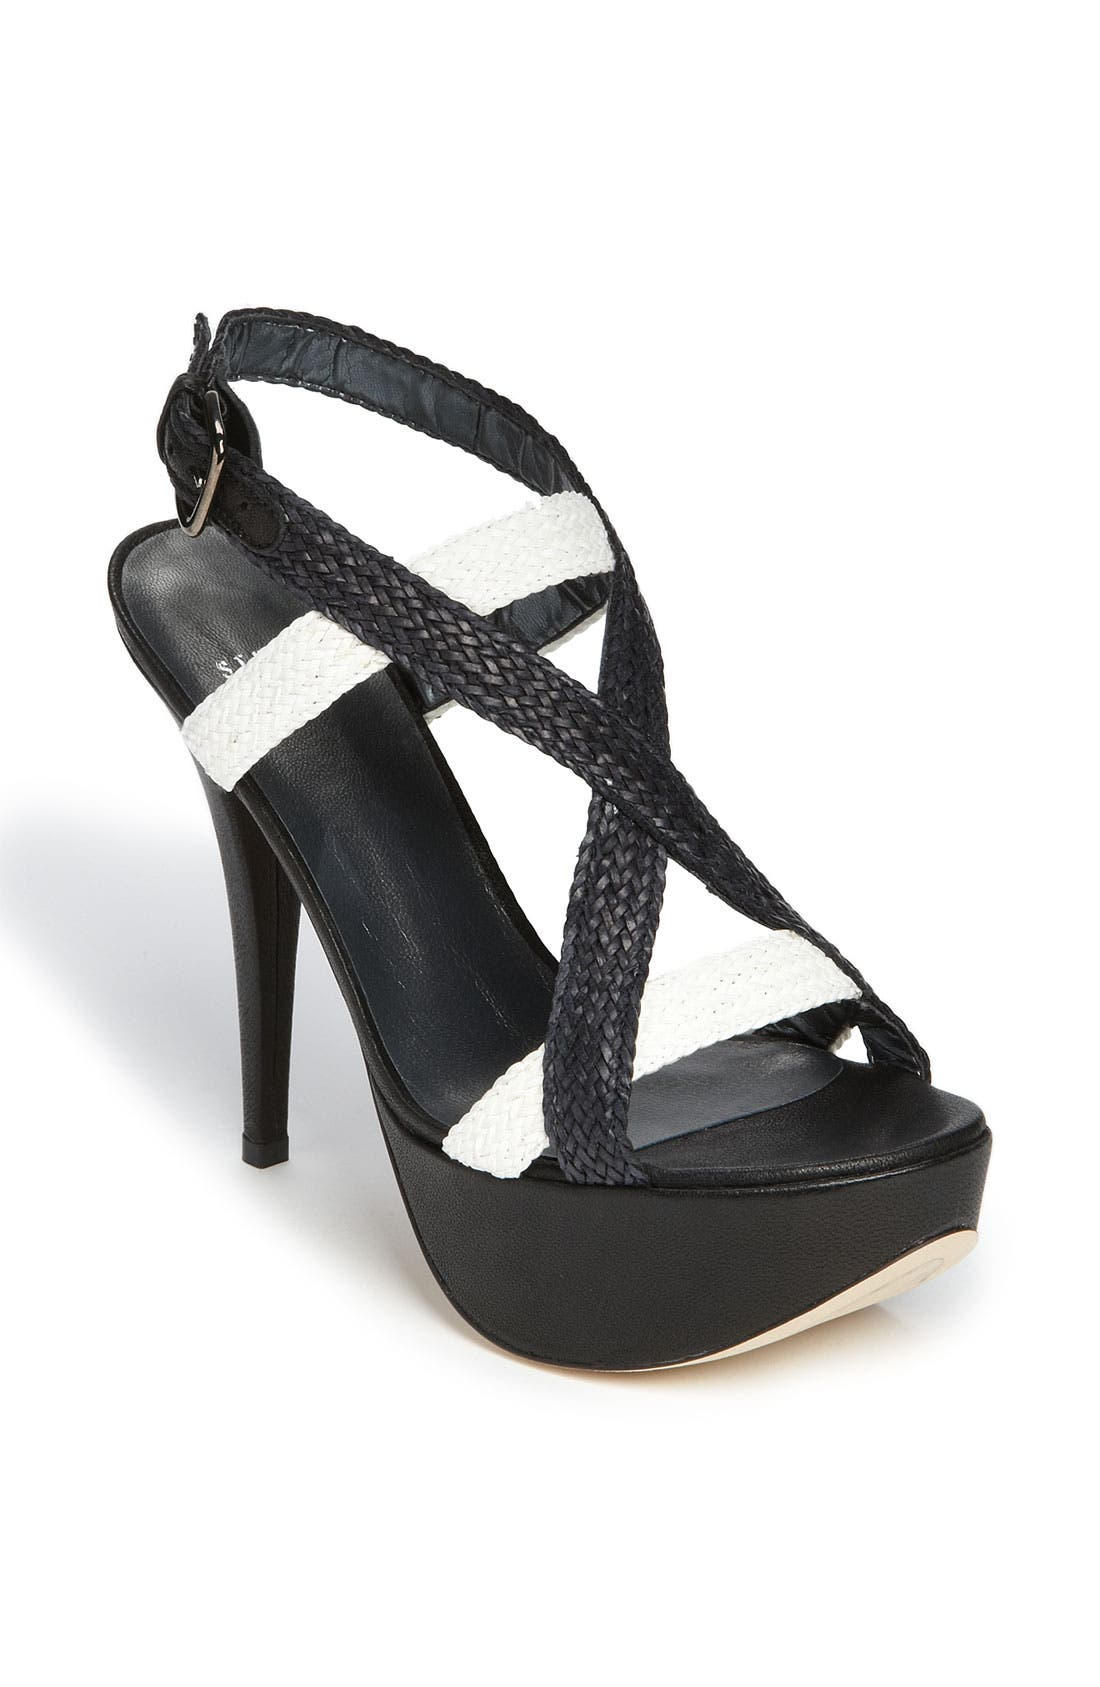 Alternate Image 1 Selected - Stuart Weitzman 'Camino' Sandal